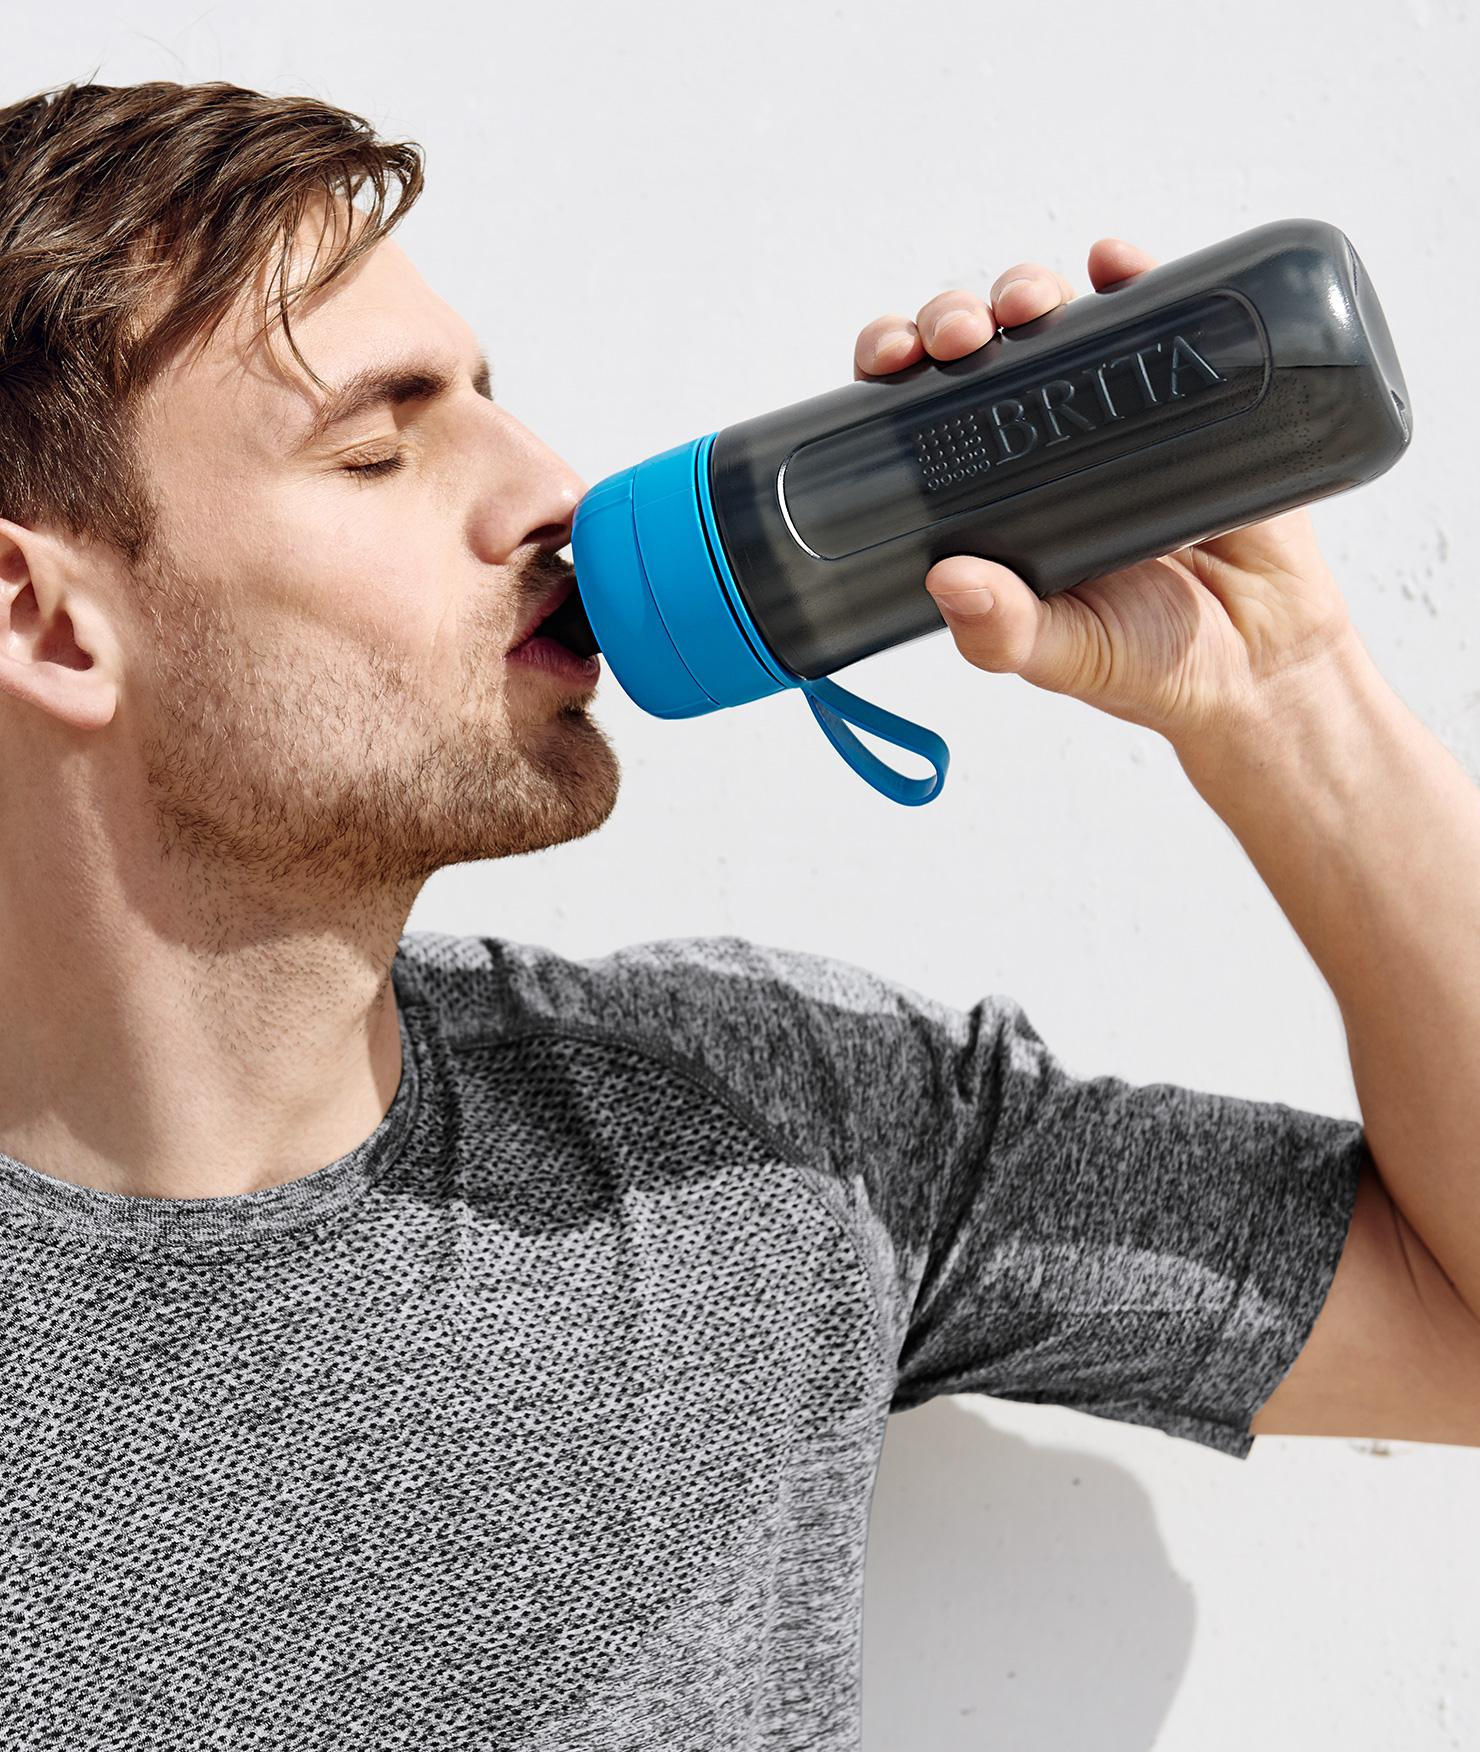 BRITA personal hydration needs man drinking water